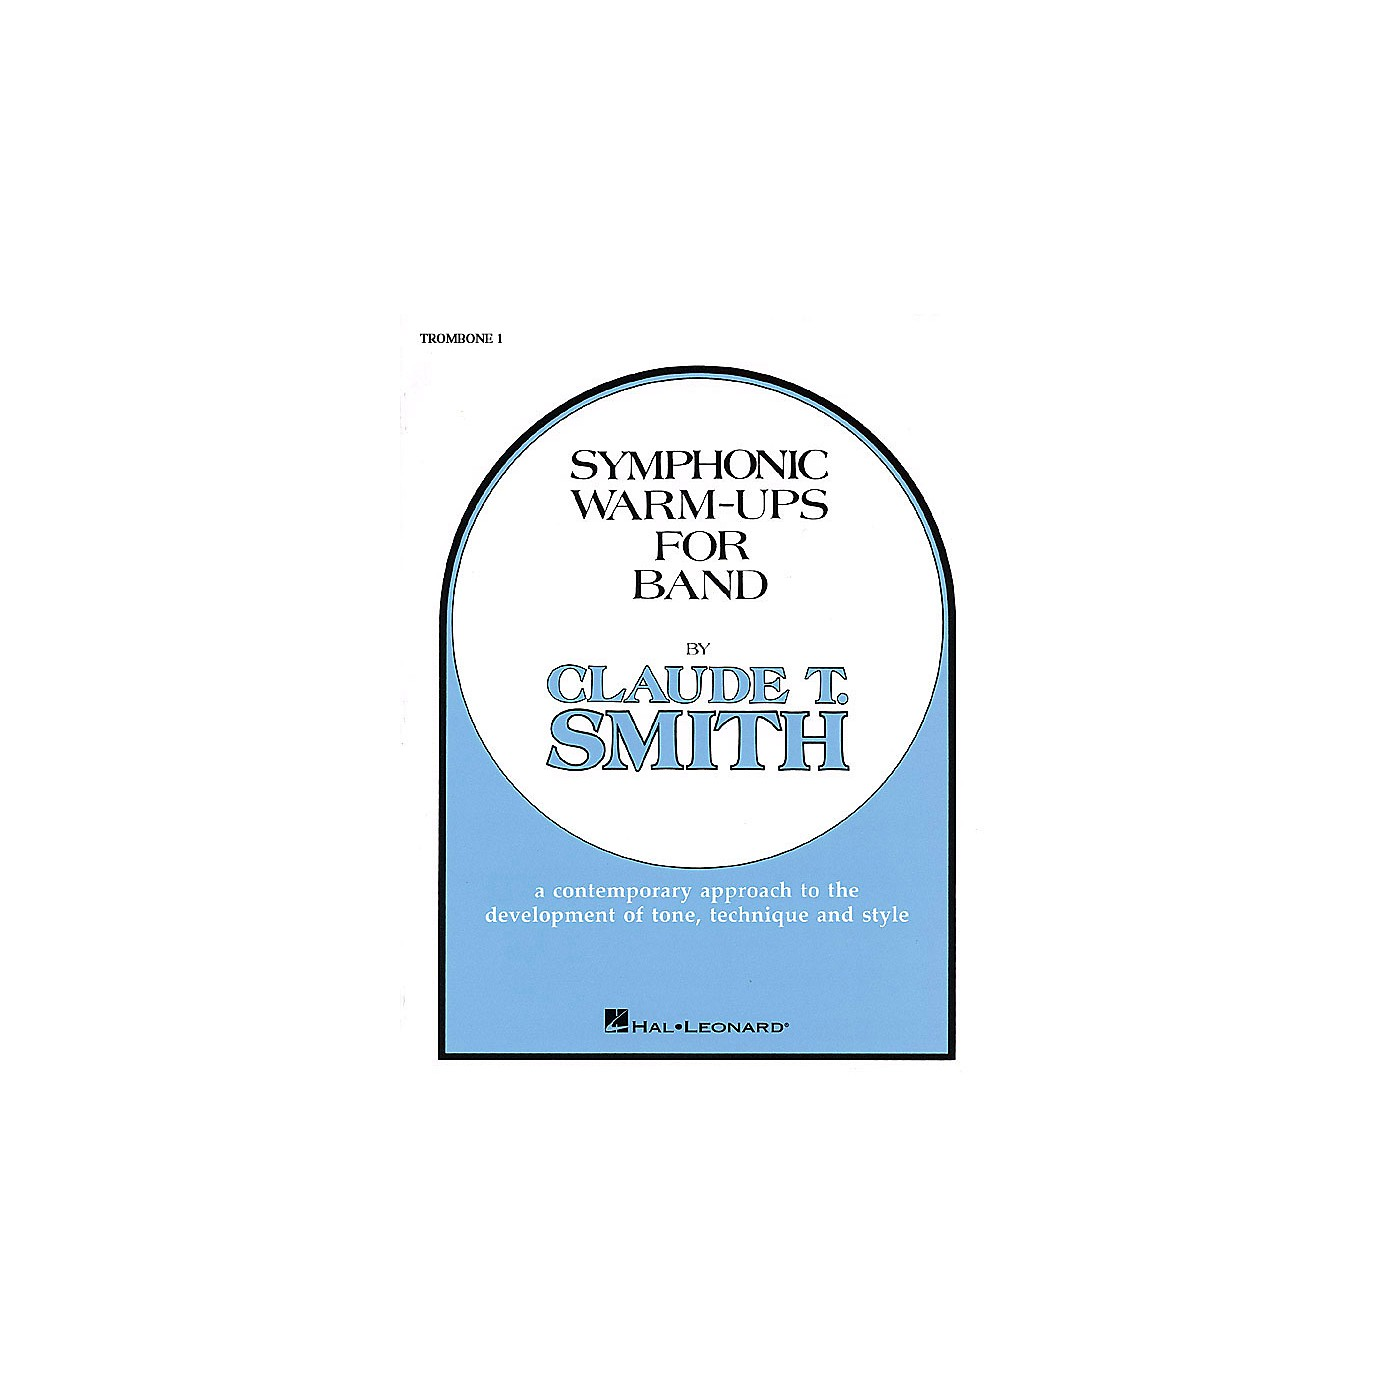 Hal Leonard Symphonic Warm-Ups for Band (Trombone 1) Concert Band Level 2-3 Composed by Claude T. Smith thumbnail